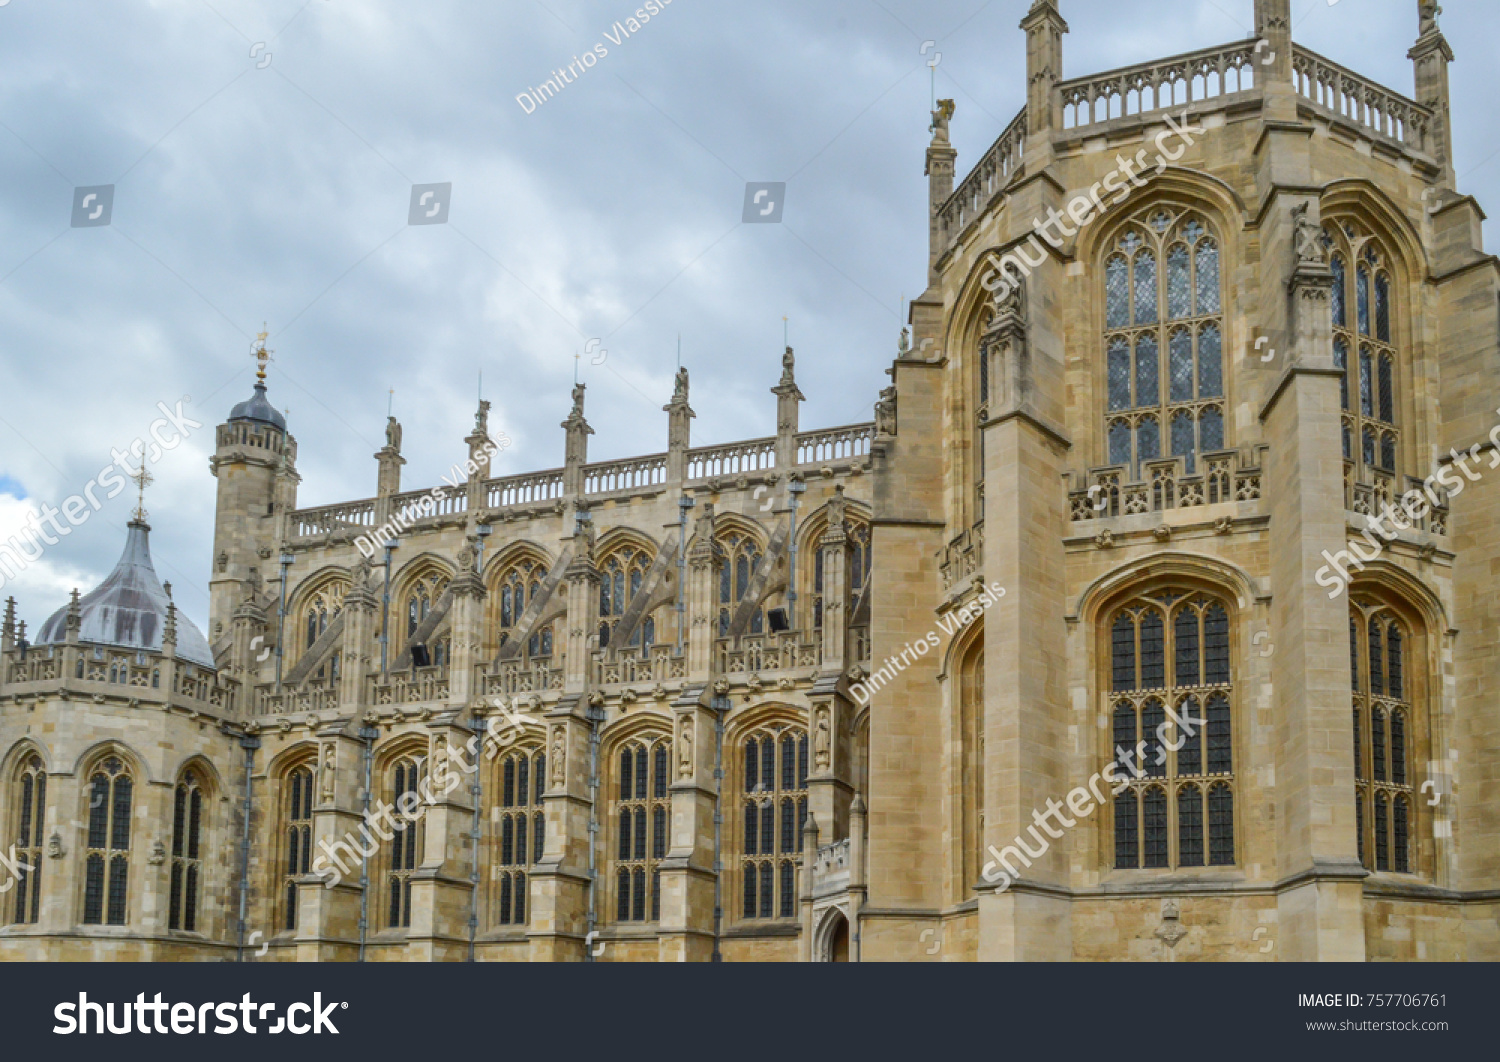 11th Century English Home - stock-photo-windsor-berkshire-england-uk-april-windsor-castle-is-a-royal-residence-at-windsor-in-757706761_Beautiful 11th Century English Home - stock-photo-windsor-berkshire-england-uk-april-windsor-castle-is-a-royal-residence-at-windsor-in-757706761  Snapshot_326661.jpg